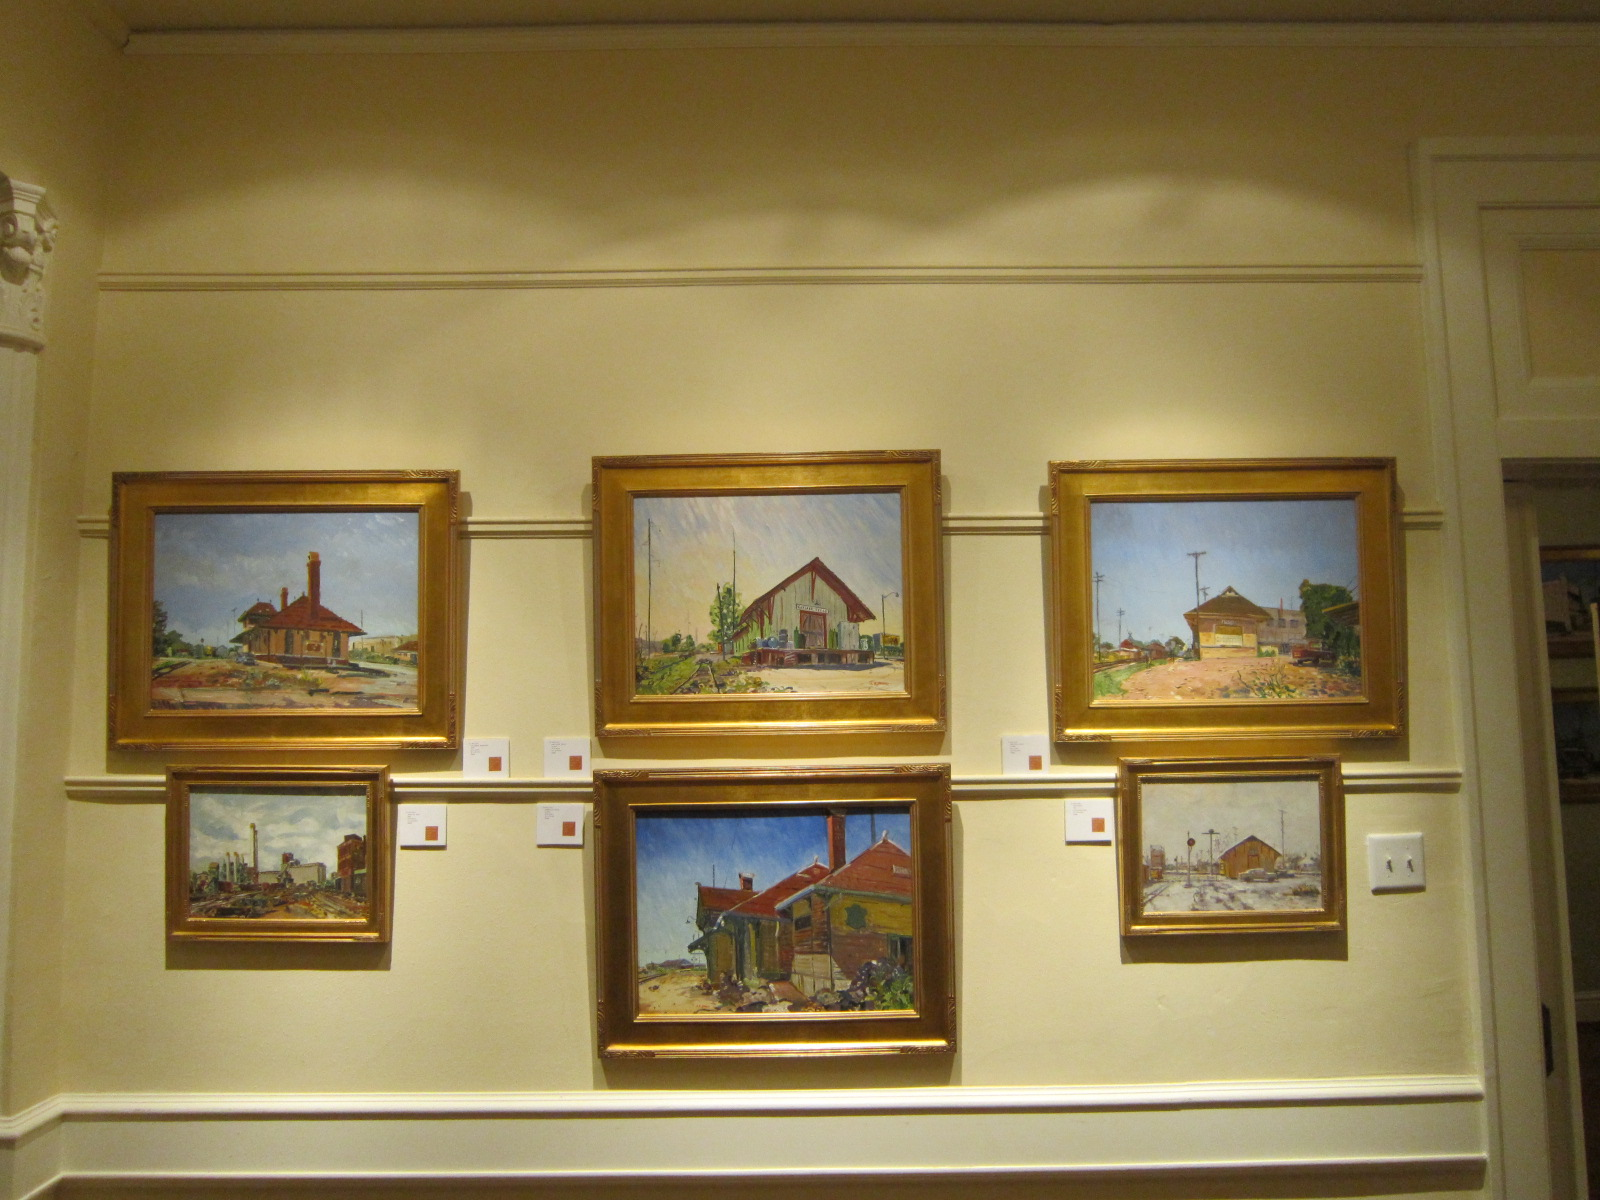 Paintings by Jack Erwin at Turner House, Dallas